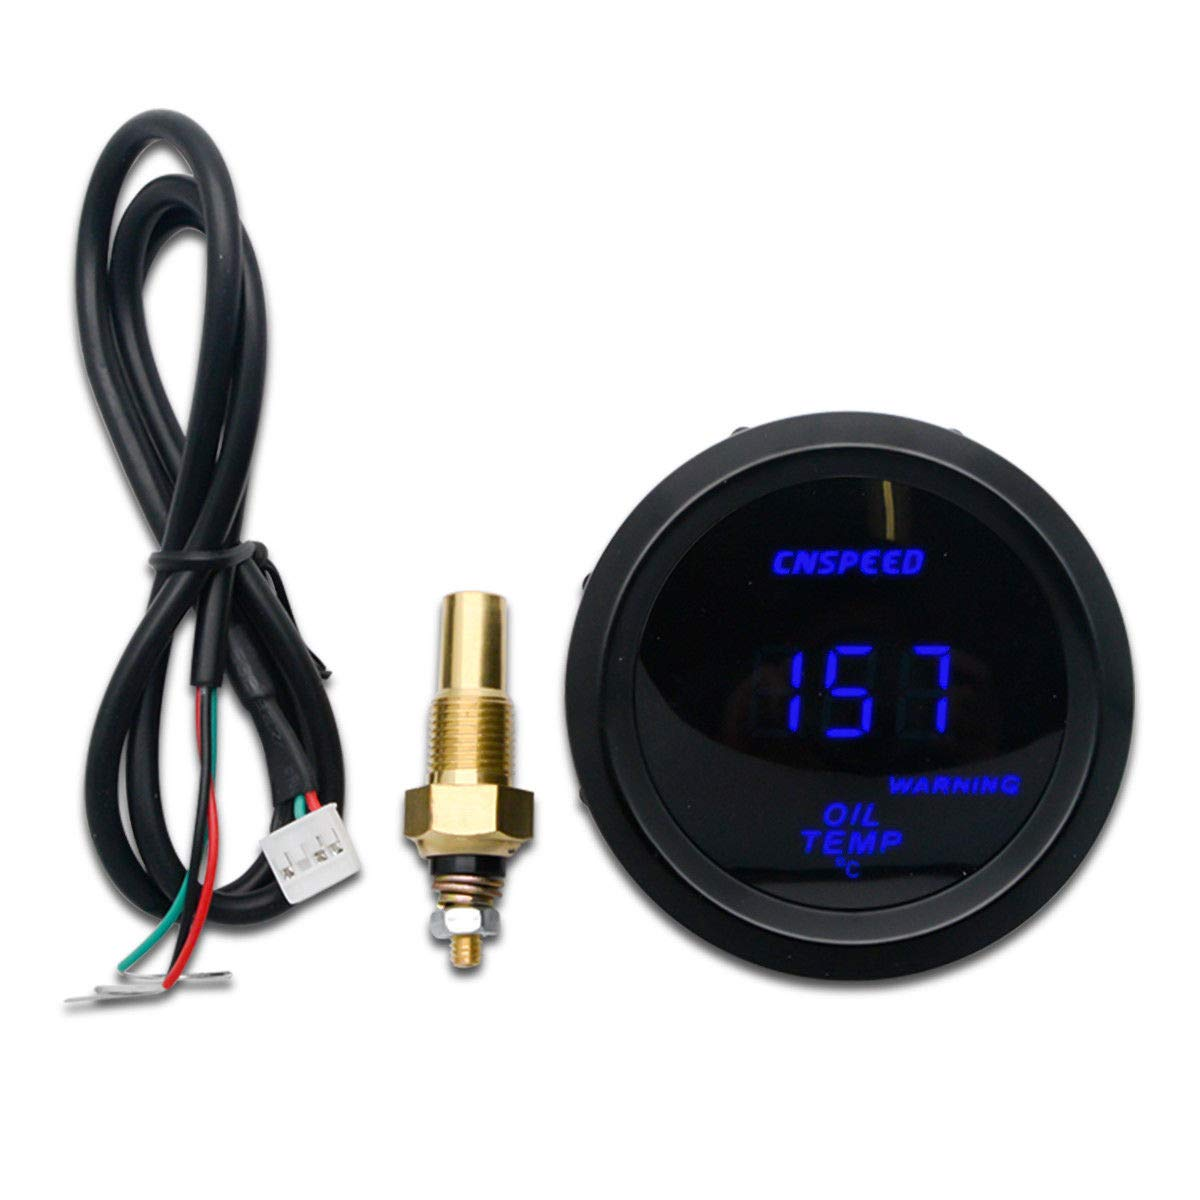 52/ mm//2/ In LCD 40~150/°C Degree MASO Digital Water Temperature Metre Gauge with Sensor for Car//Trunk//Motor Blue LED Display/&Red Warning Lamp